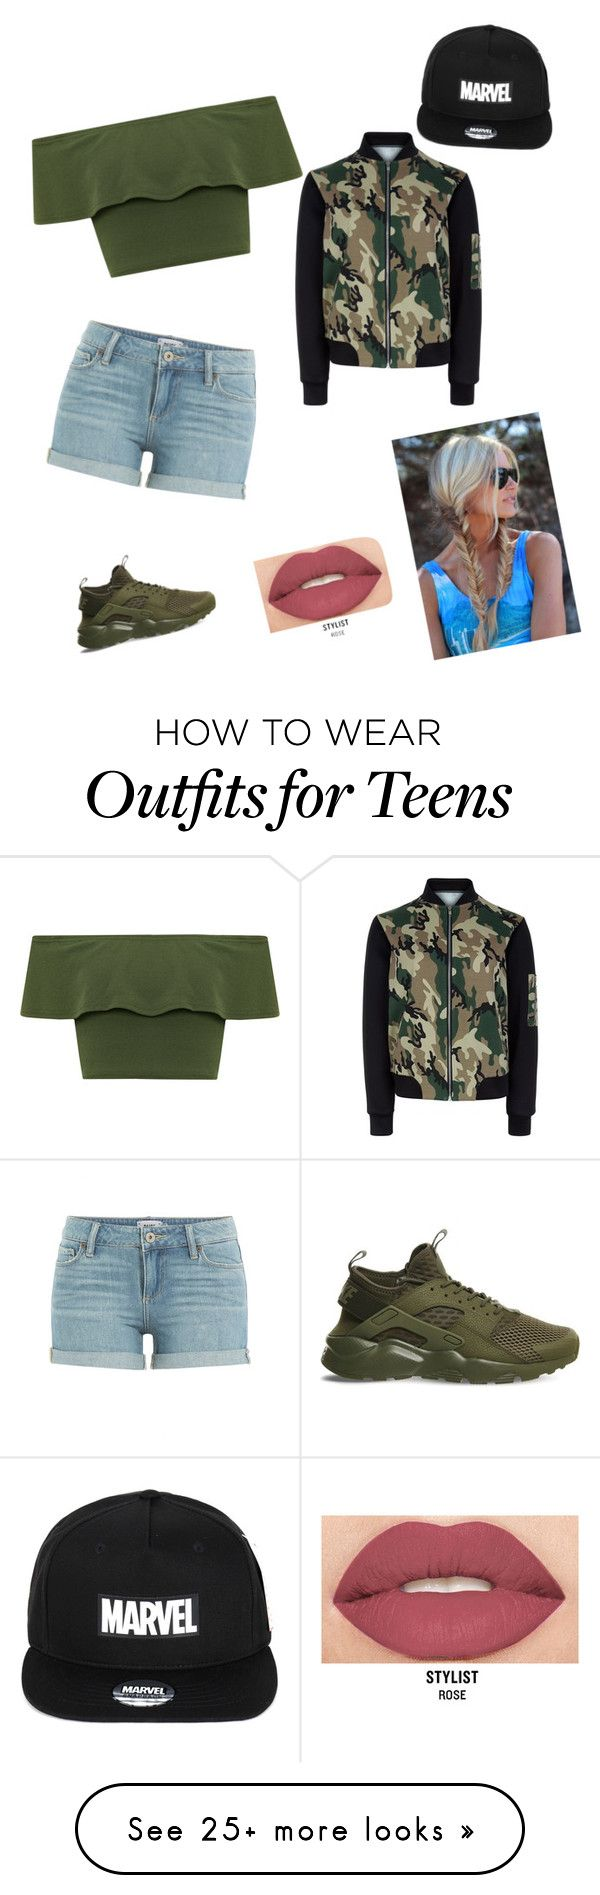 """Untitled #188"" by tavarezstyles8 on Polyvore featuring Paige Denim, WearAll, NIKE, New Look and Smashbox"